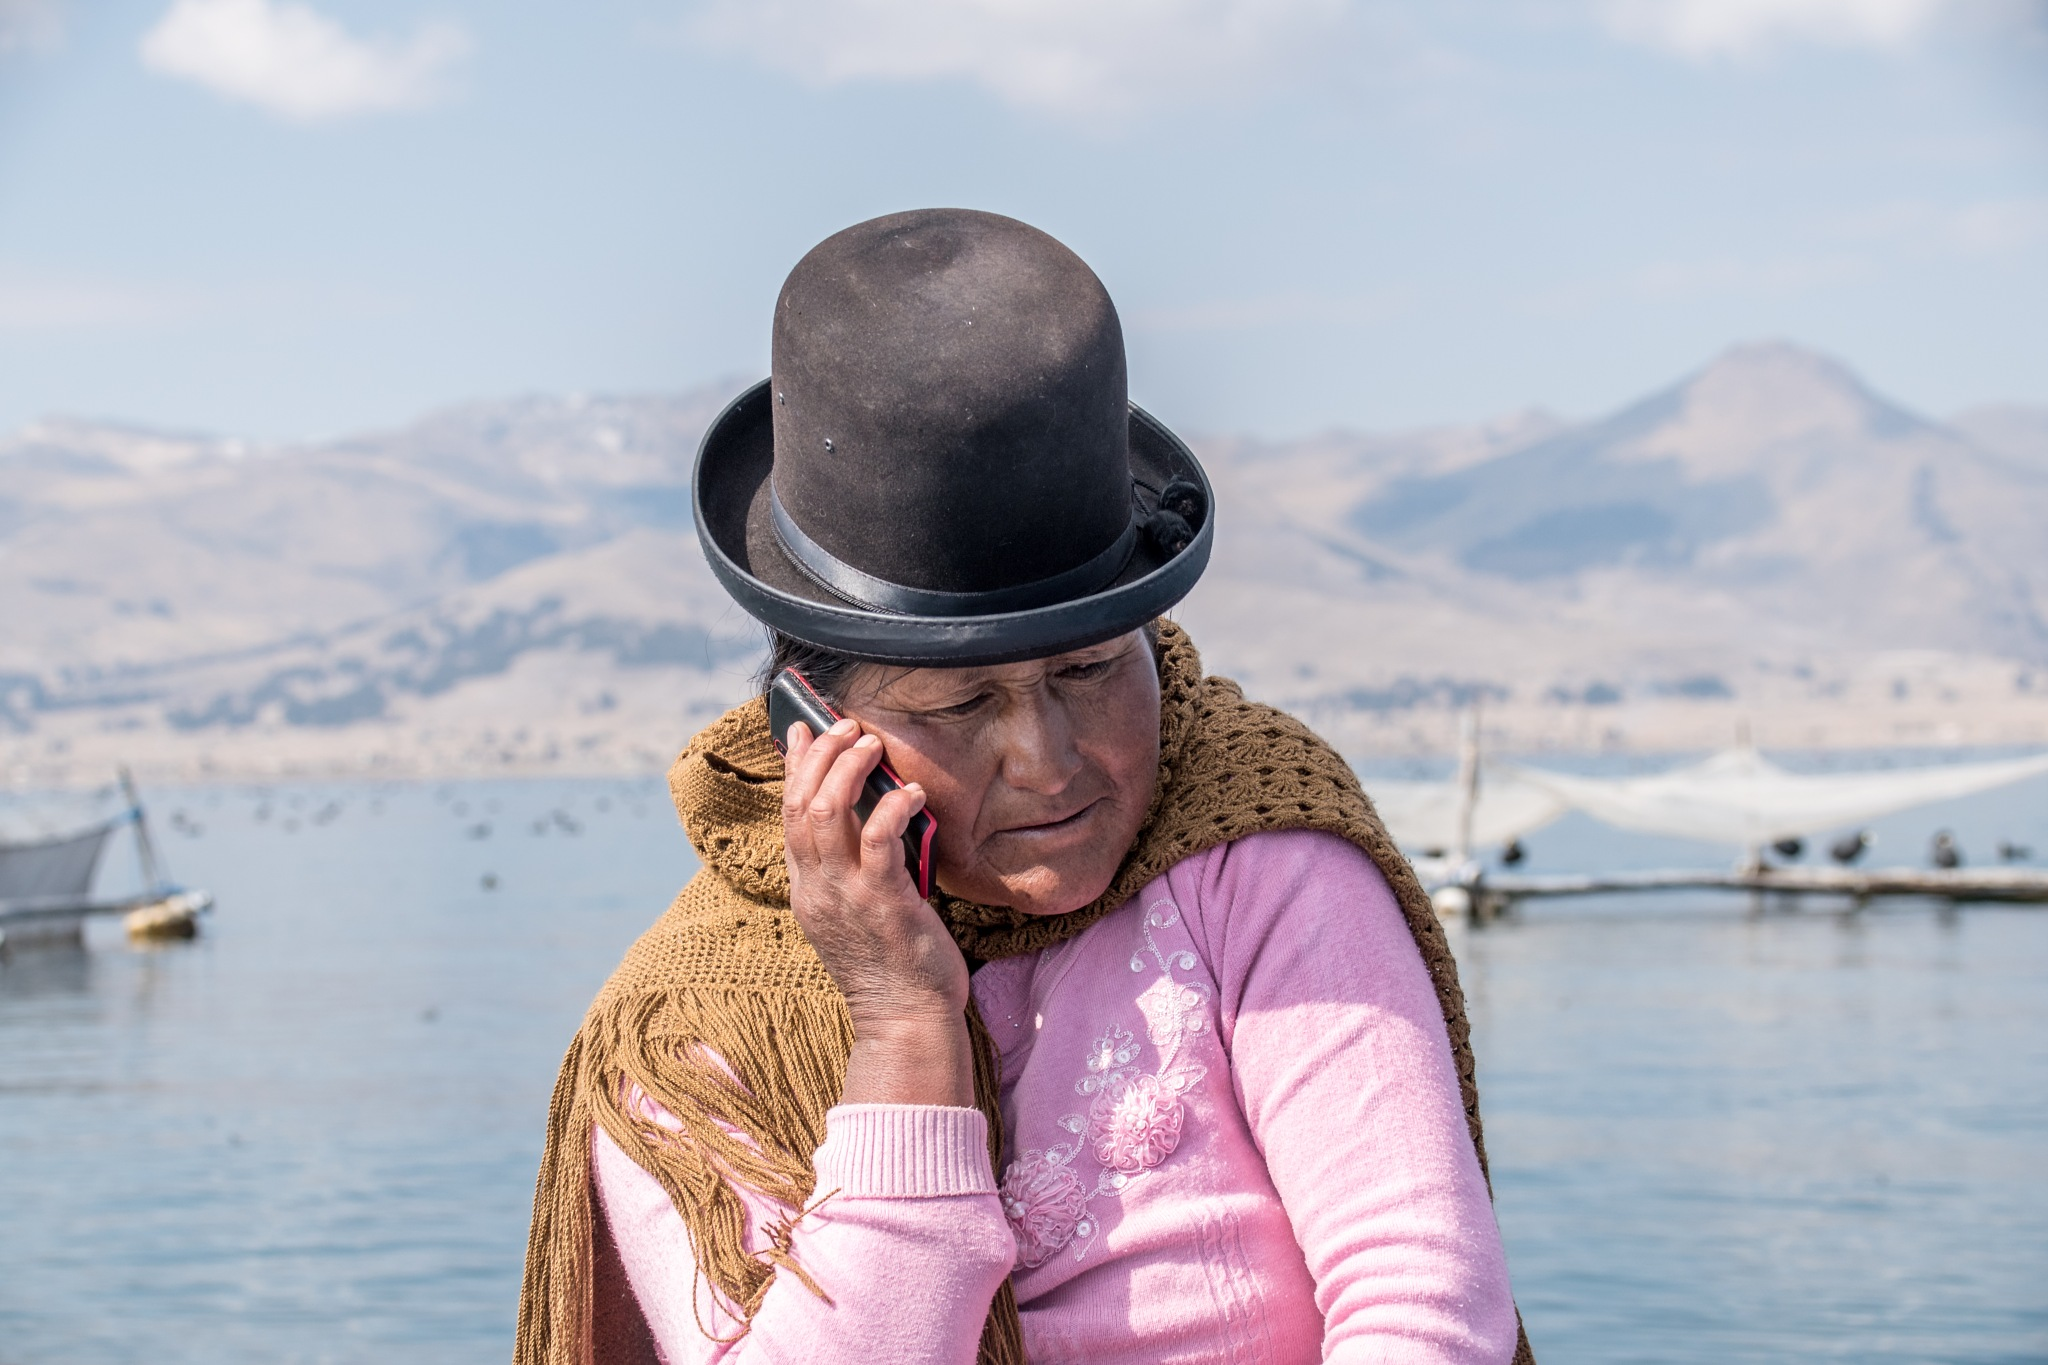 Woman from Lake Titicaca by Marianne Drews